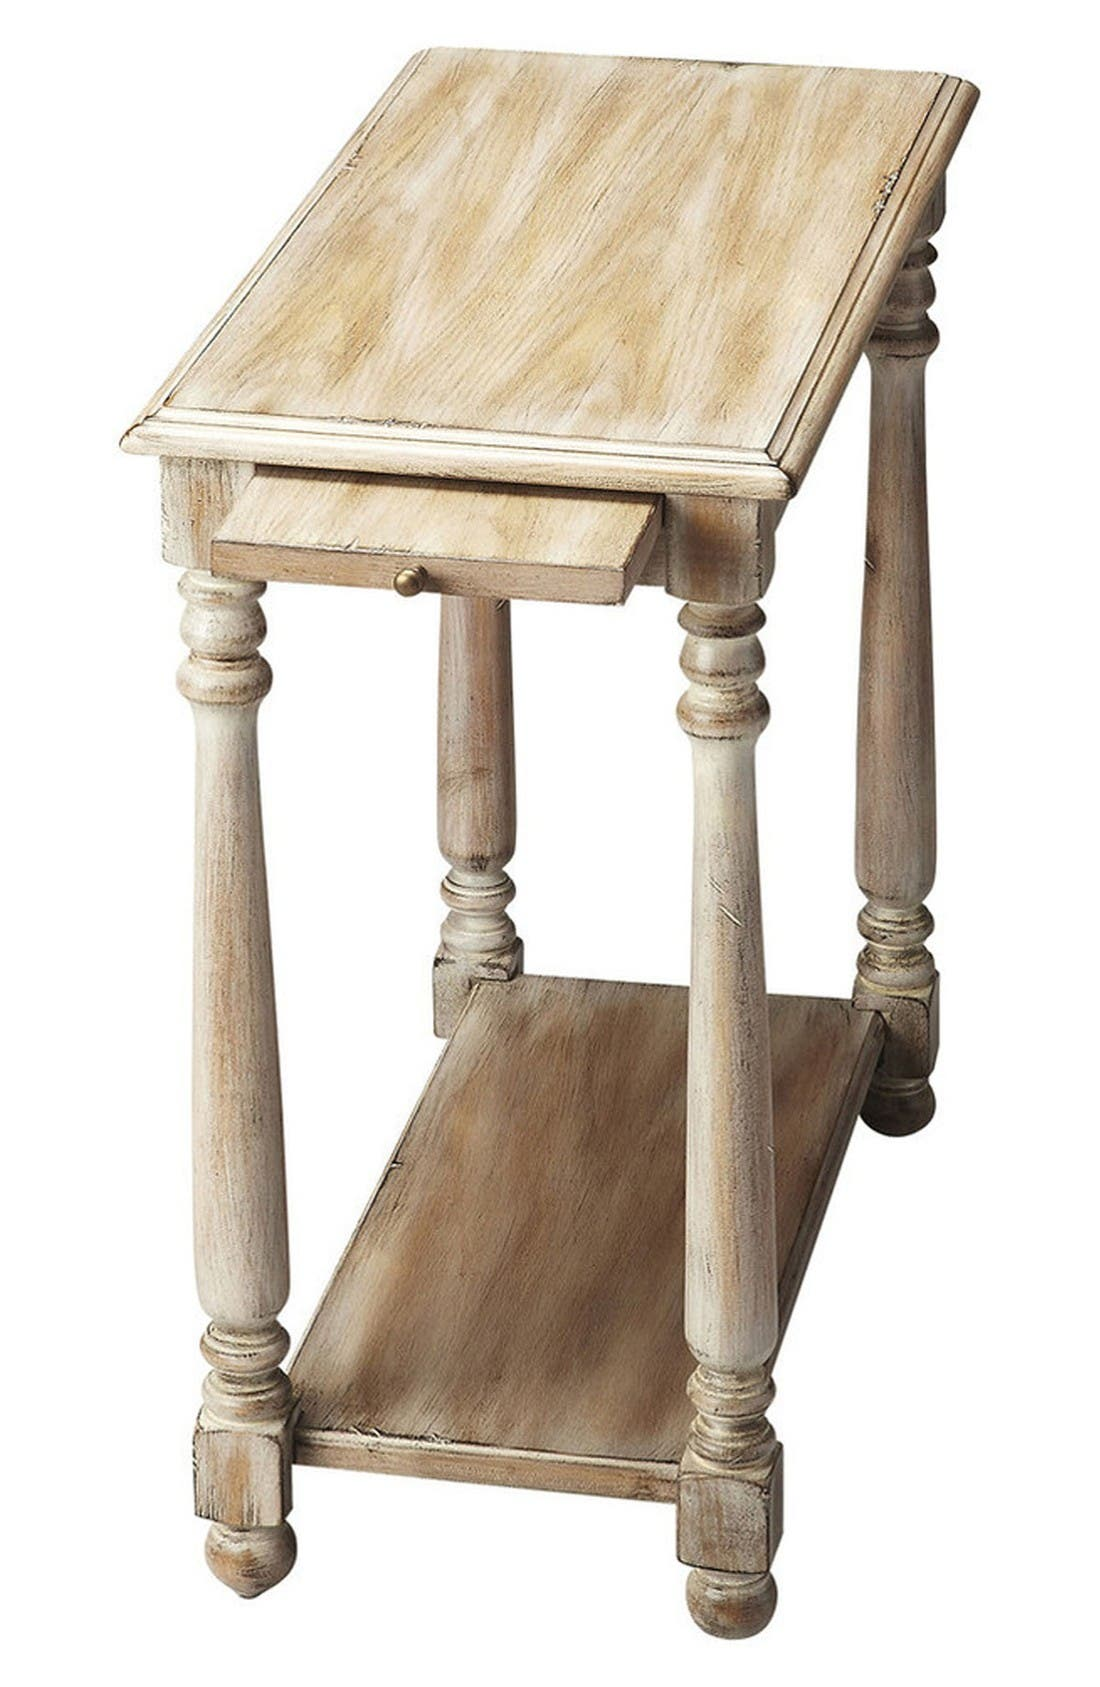 Alternate Image 1 Selected - Butler Wood Chairside Table